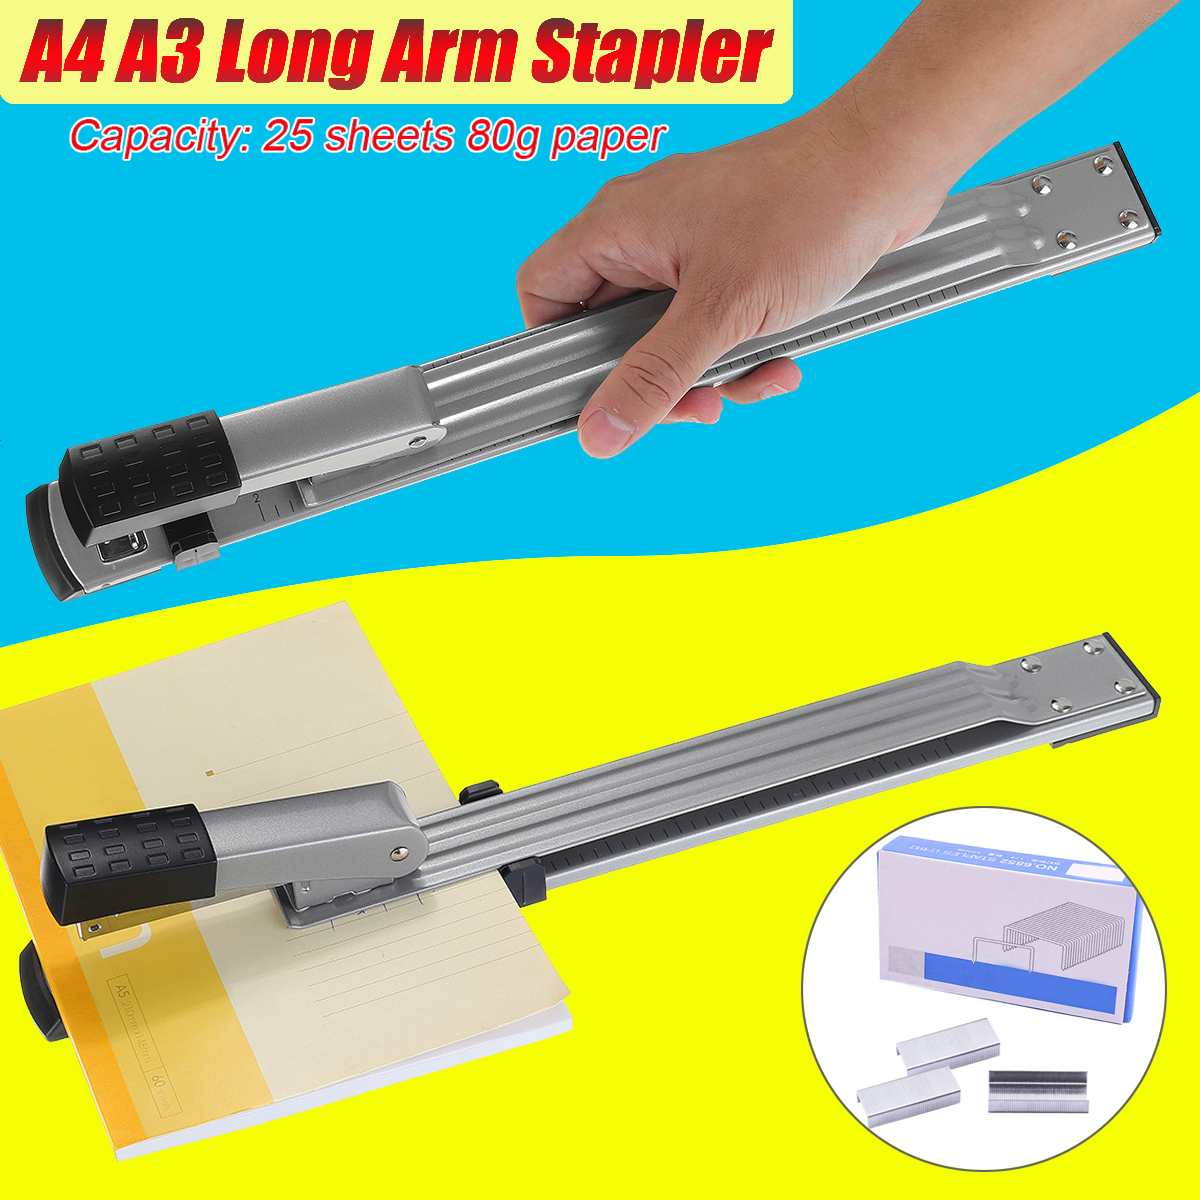 Steel Long Arm Stapler Metal Special A4 A3 Sewing Machine Staple Lengthening Stapler Paper Stapling Office Stapler Bookbinding